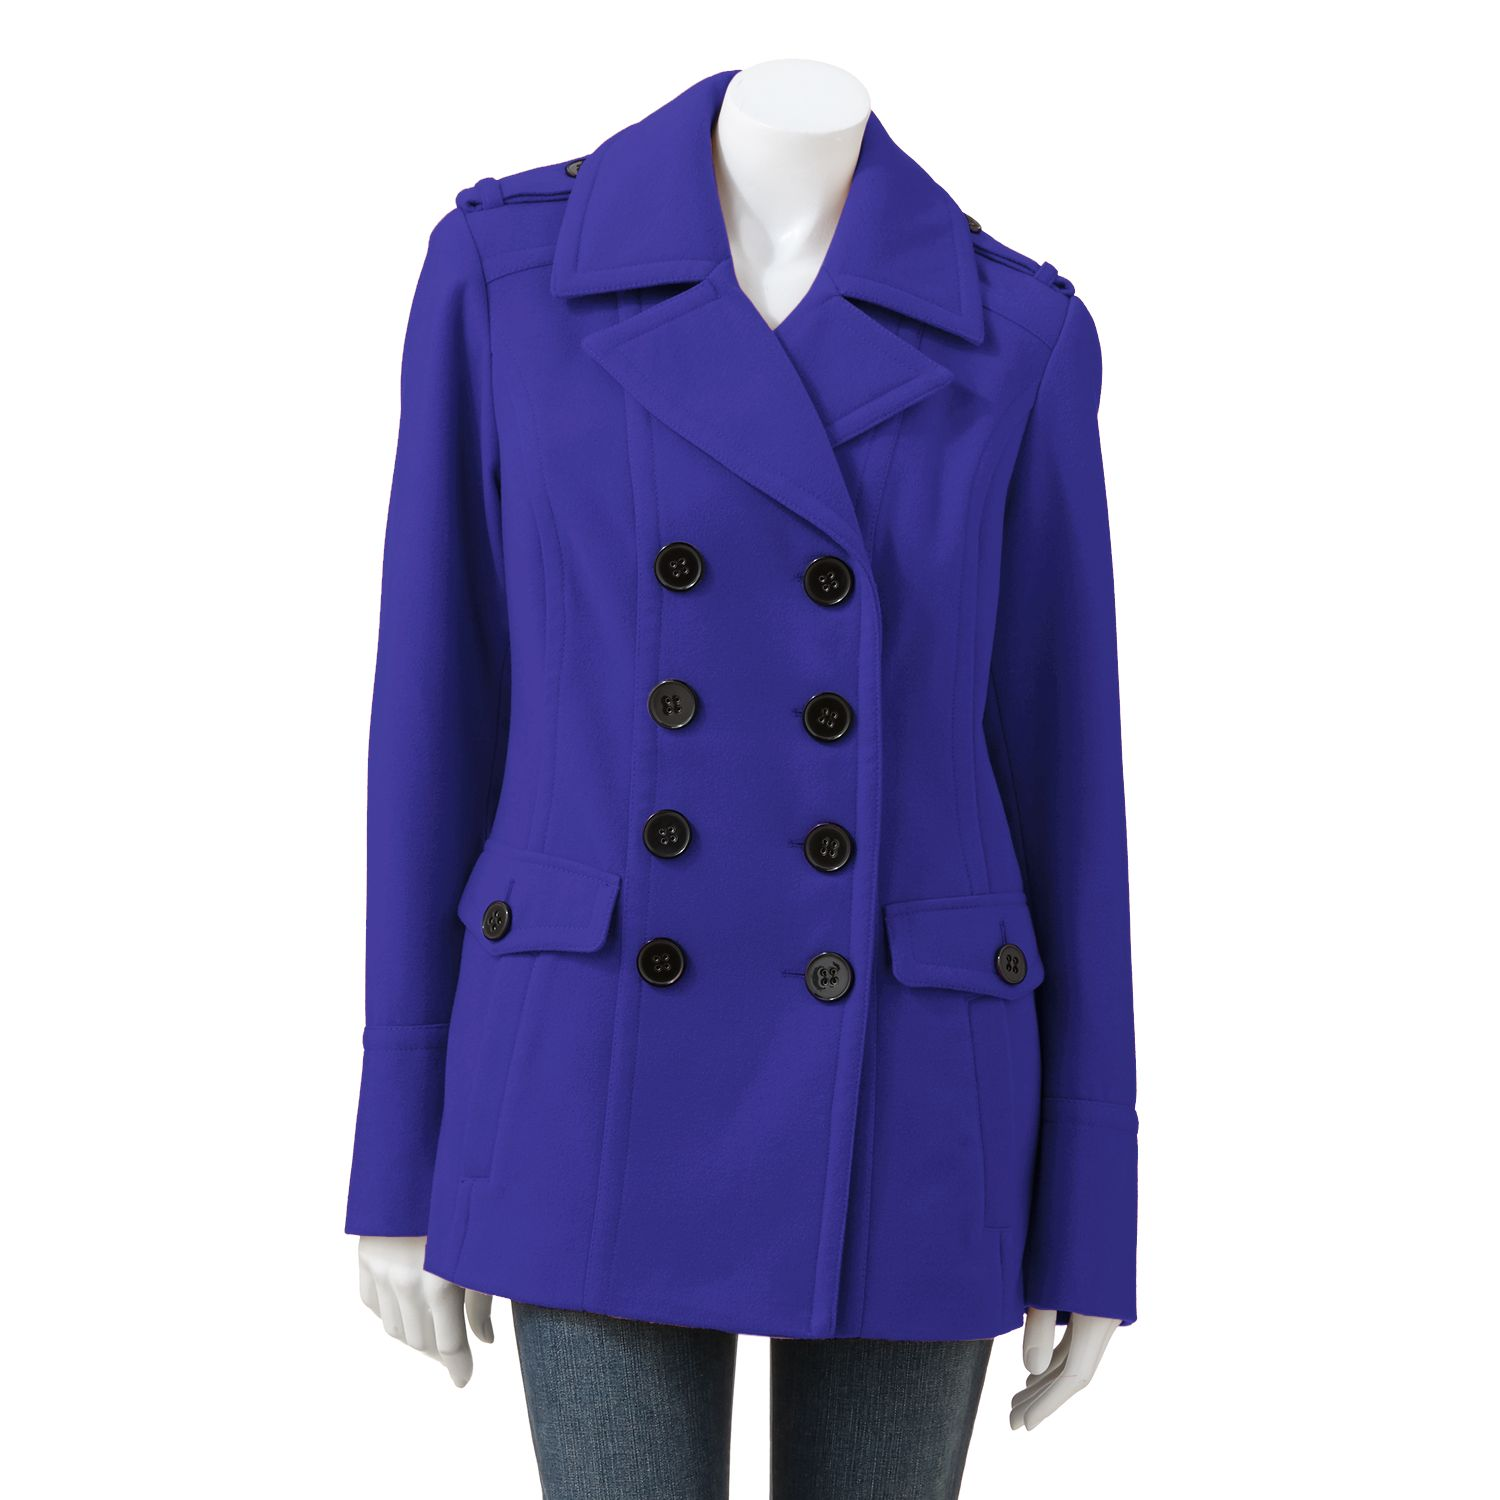 Apt. 9 Solid Peacoat - Women's